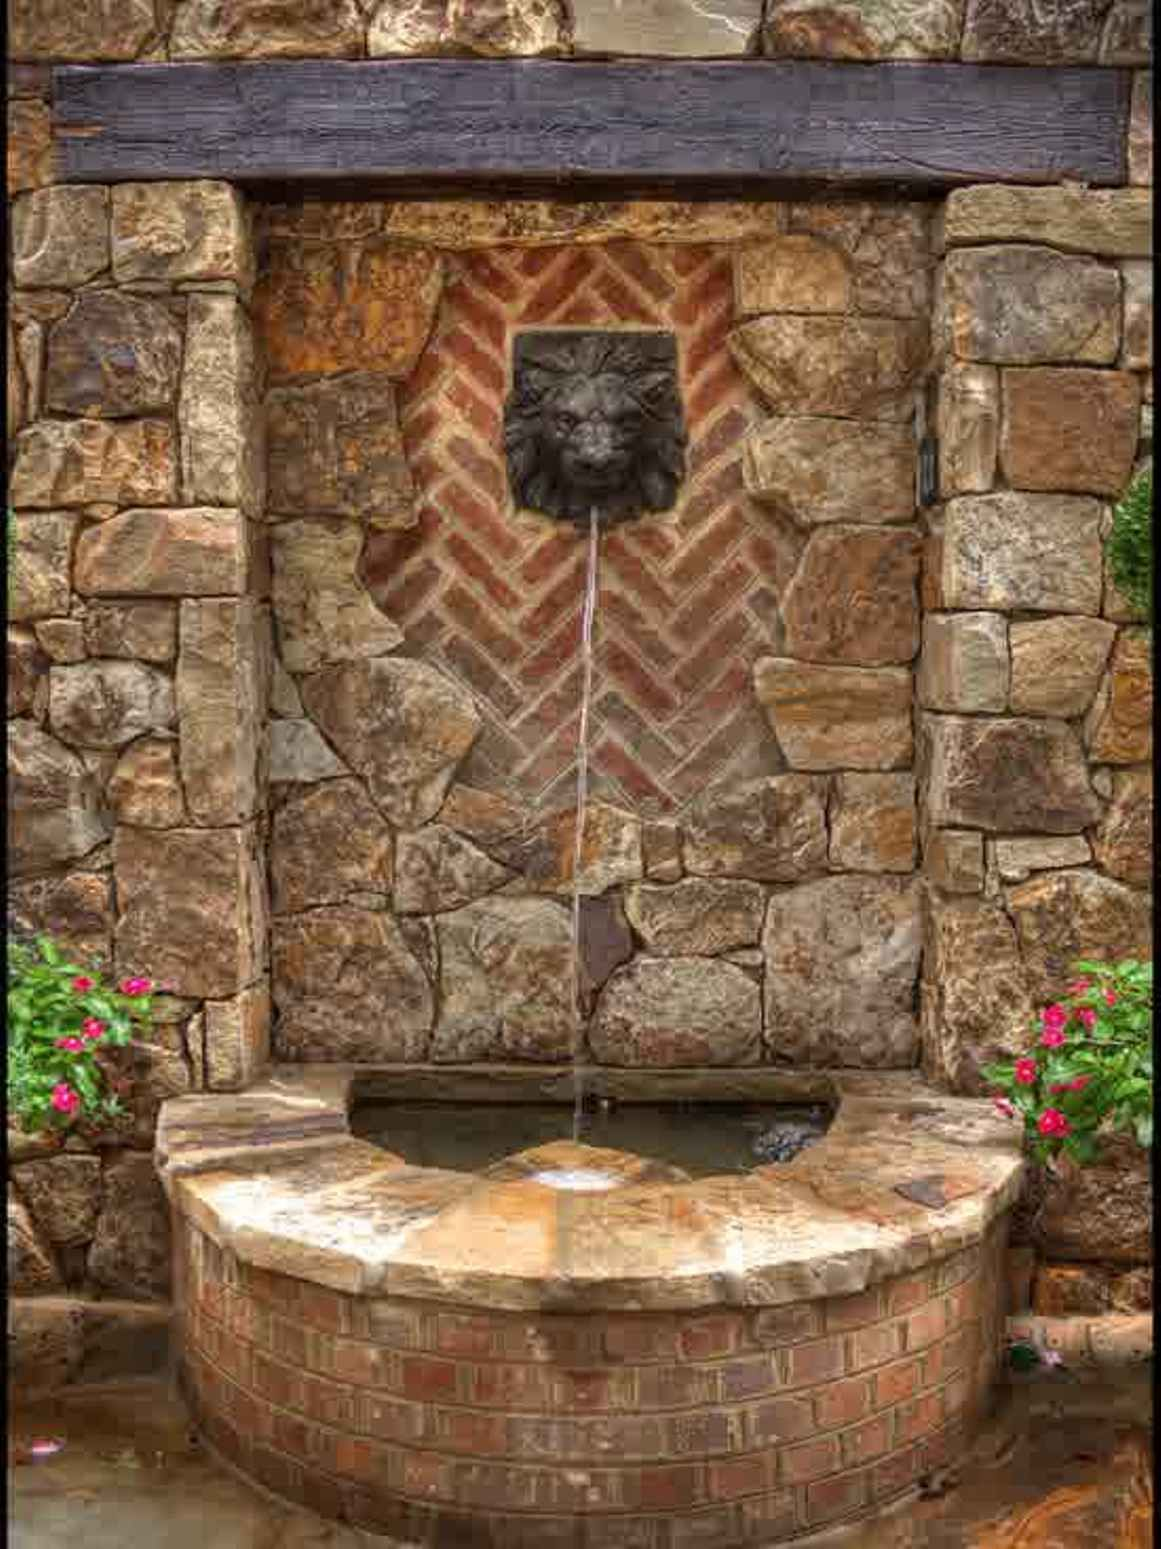 Wall stone cool backyard fountains great addition cool - Small garden fountain ideas ...